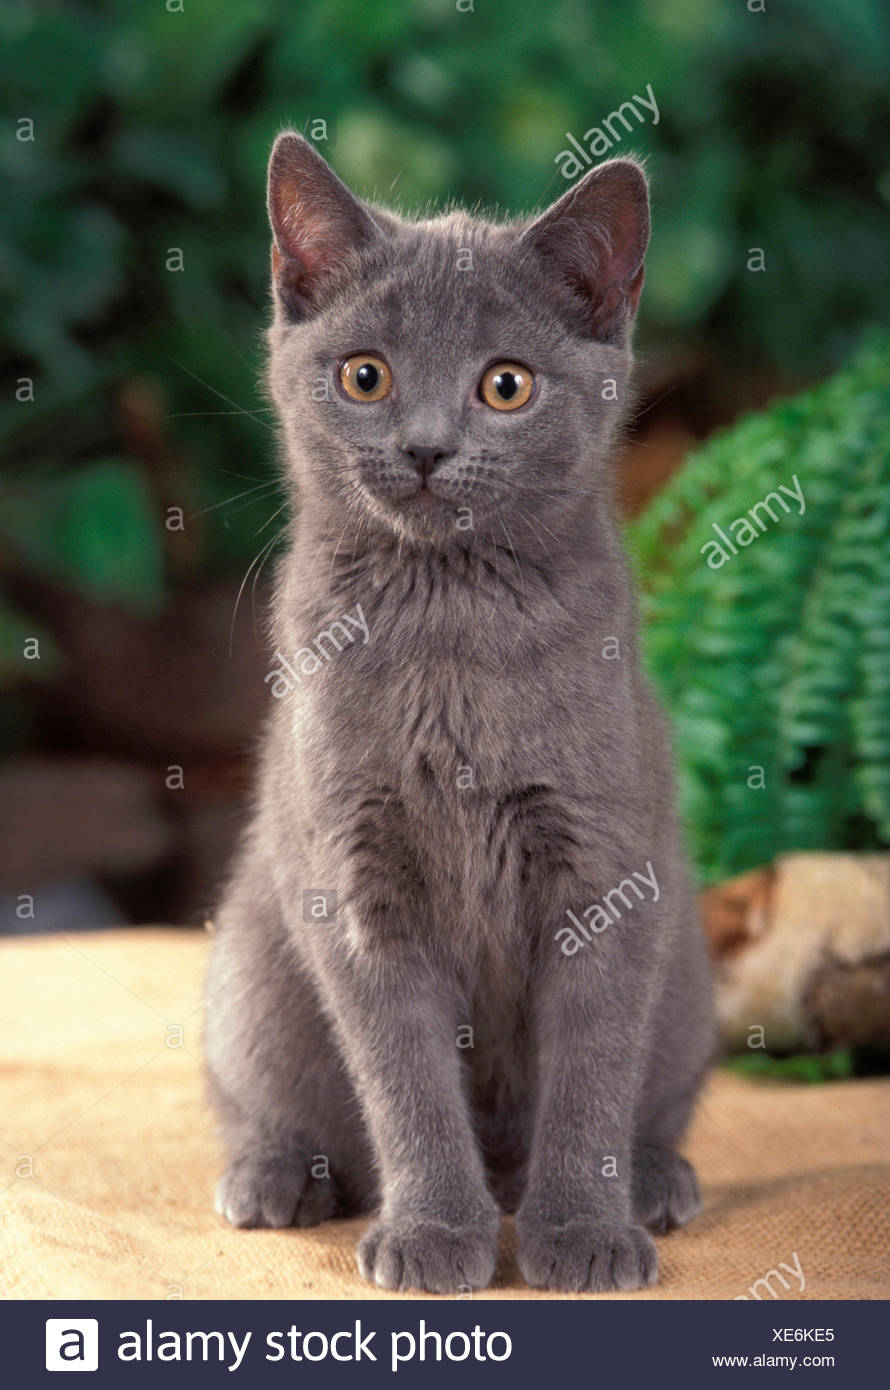 Chartreux Chaton Chat Chartreux Chaton Assis Blanket Banque D Images Photo Stock